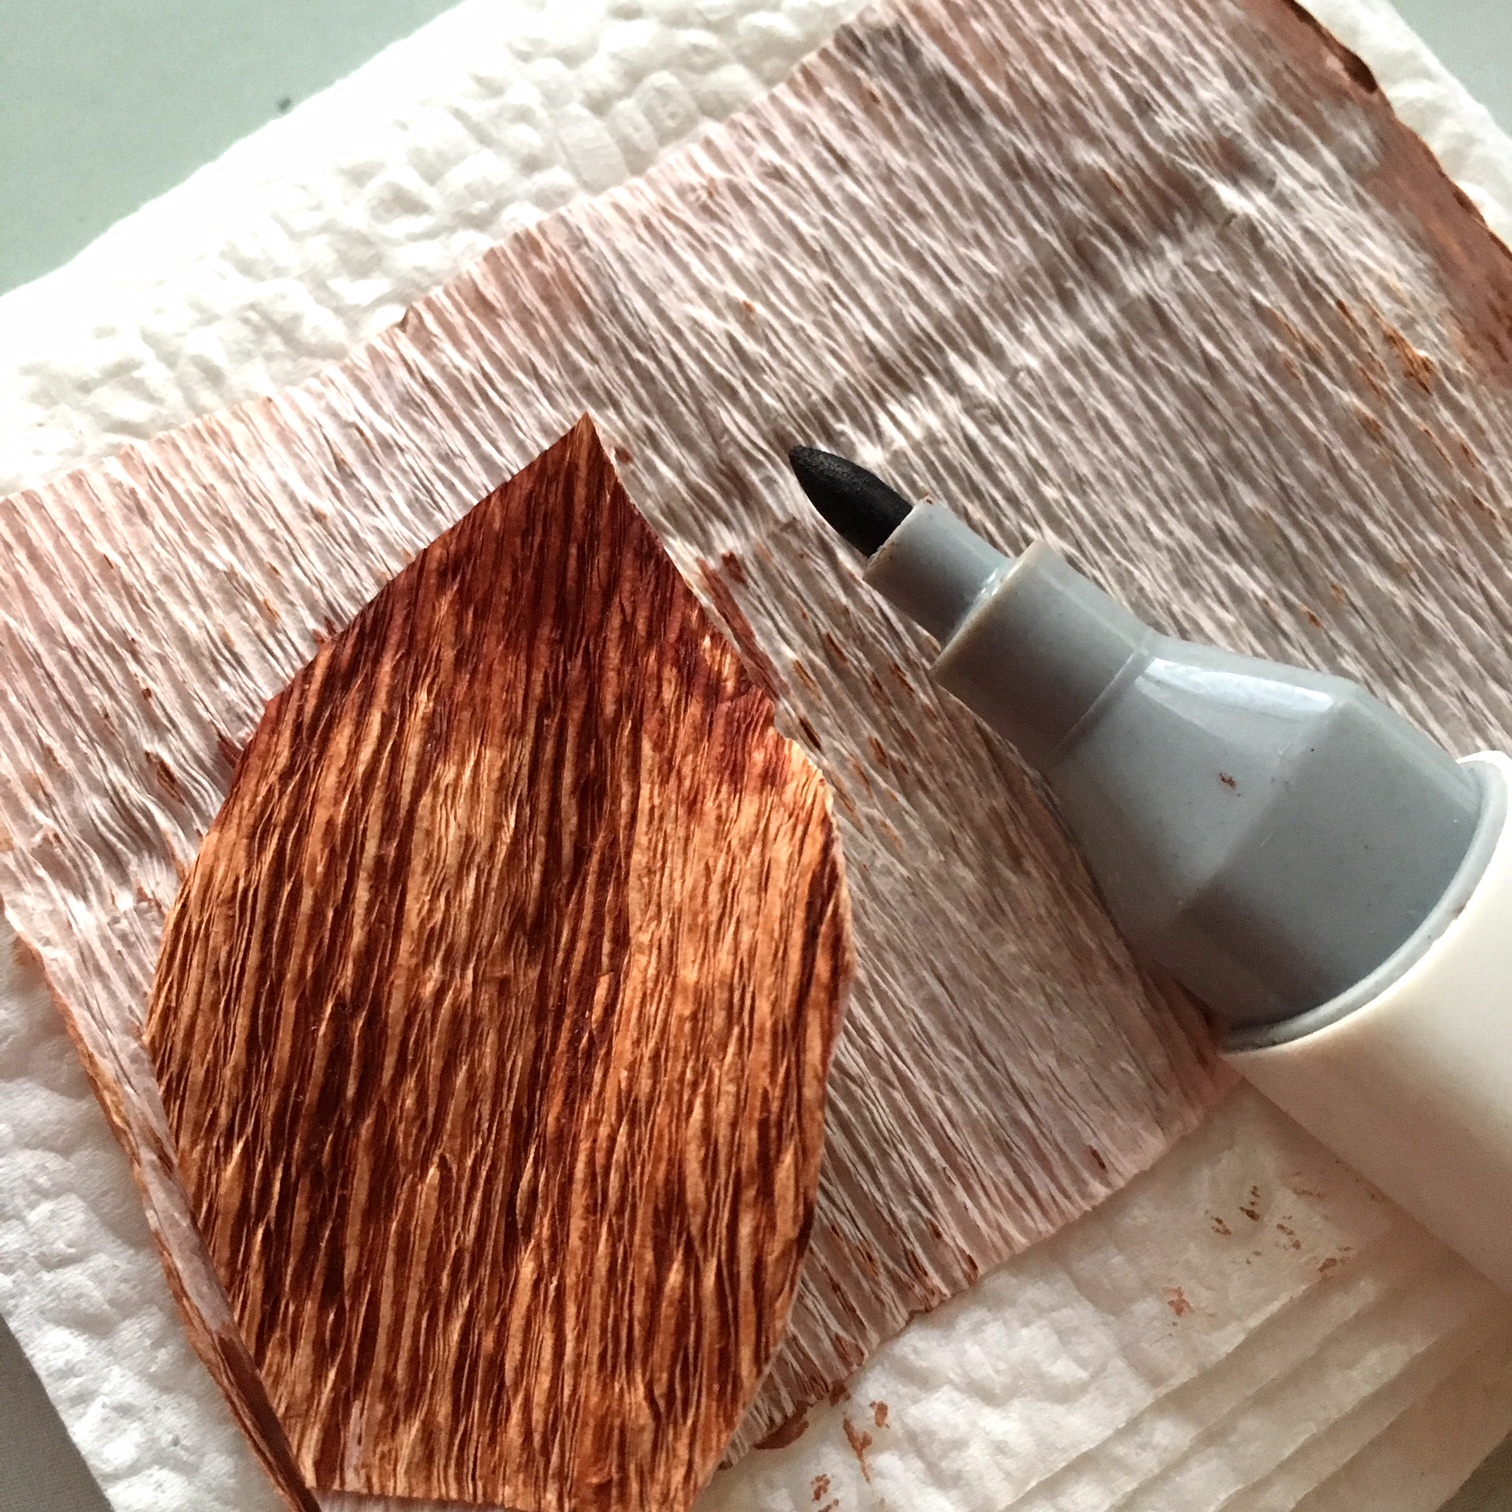 adding extra brown colour on the top of the brown crepe paper leaves - with a brown alcohol based marker